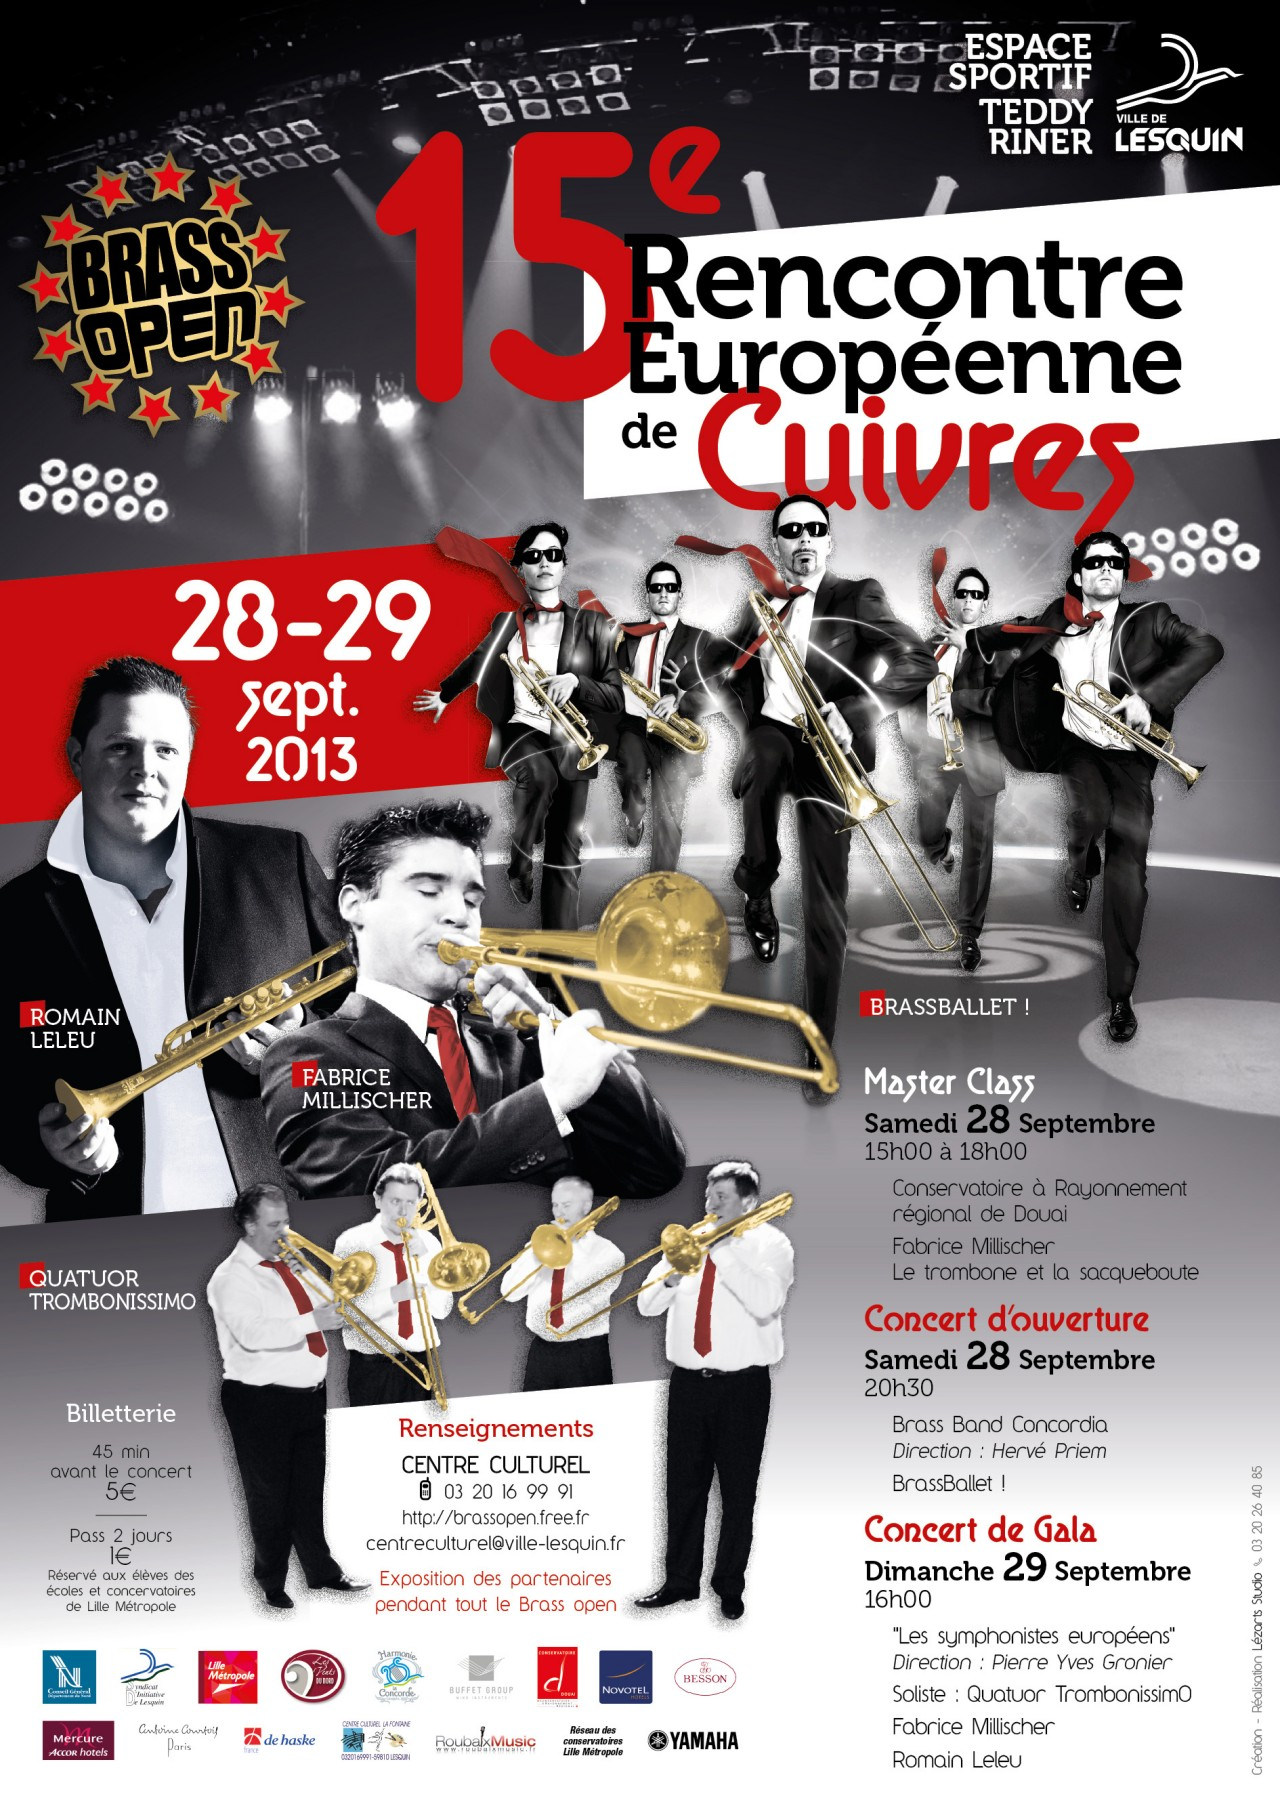 Brass Open 2013 : 15 ème Edition. 28-29 Septembre